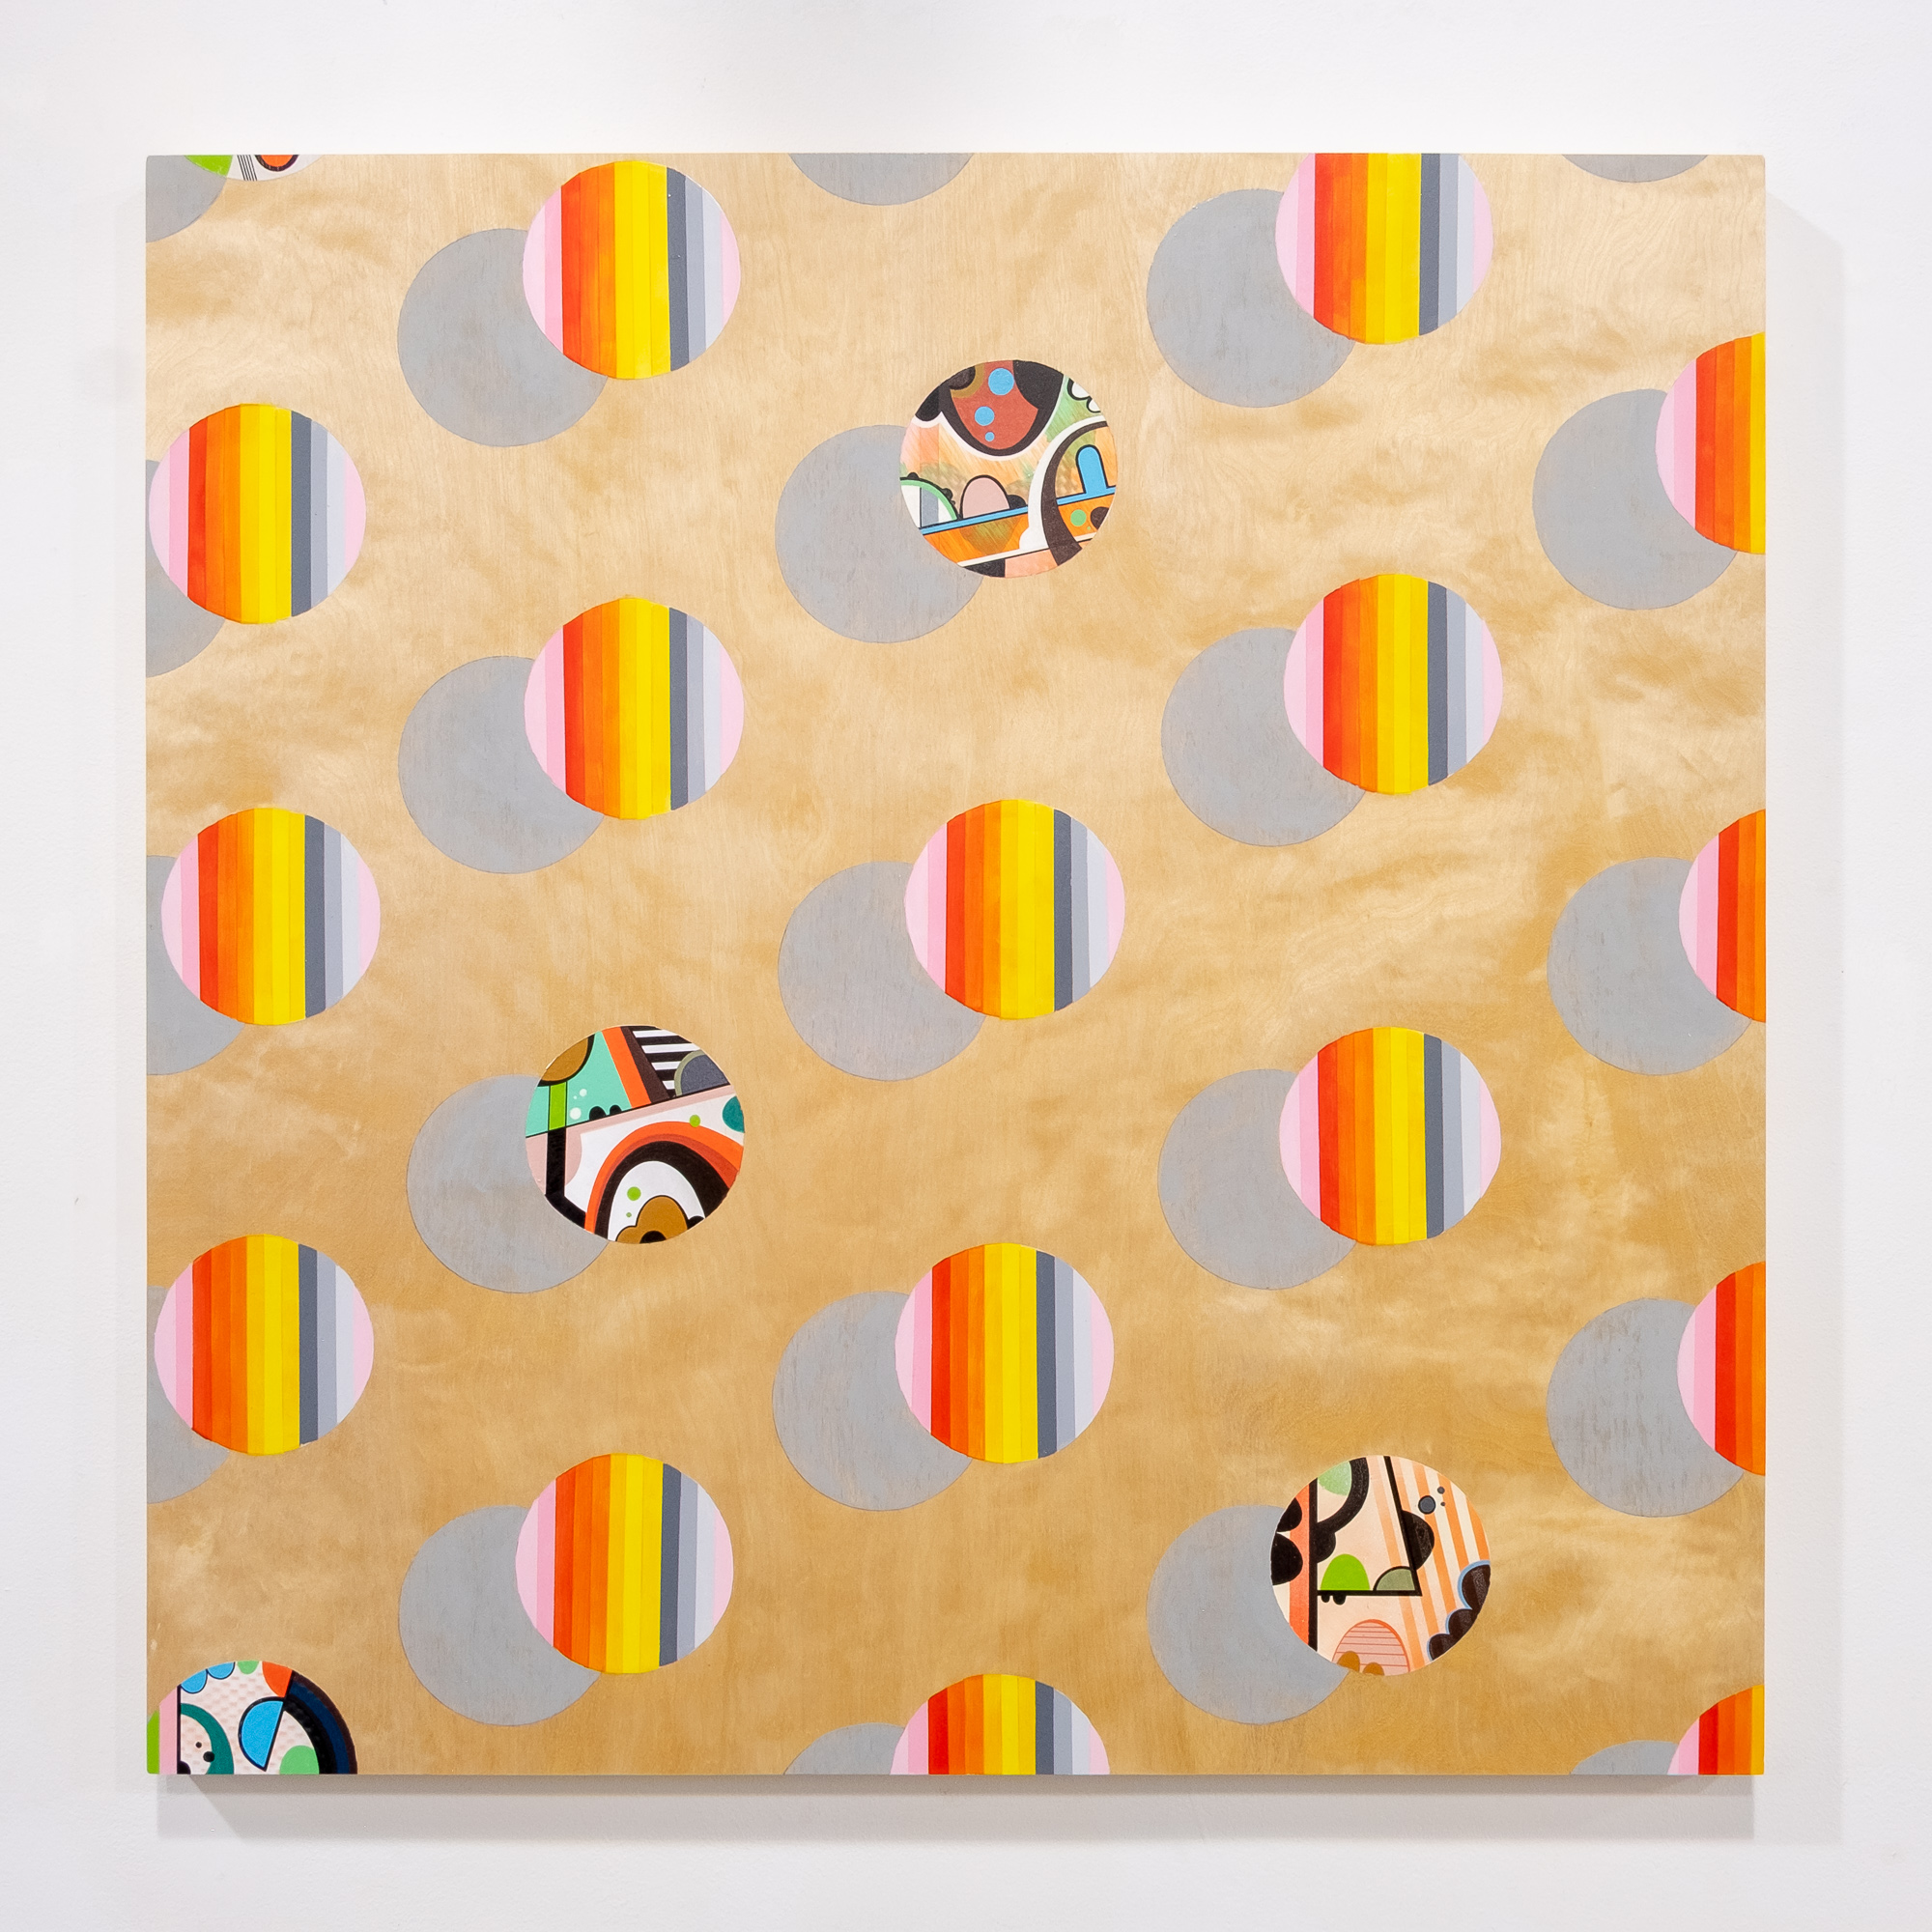 Lela Brunet and Phil Harris   Going Rogue   acrylic paint on wood panel 36 x 36 inches LBR 071G